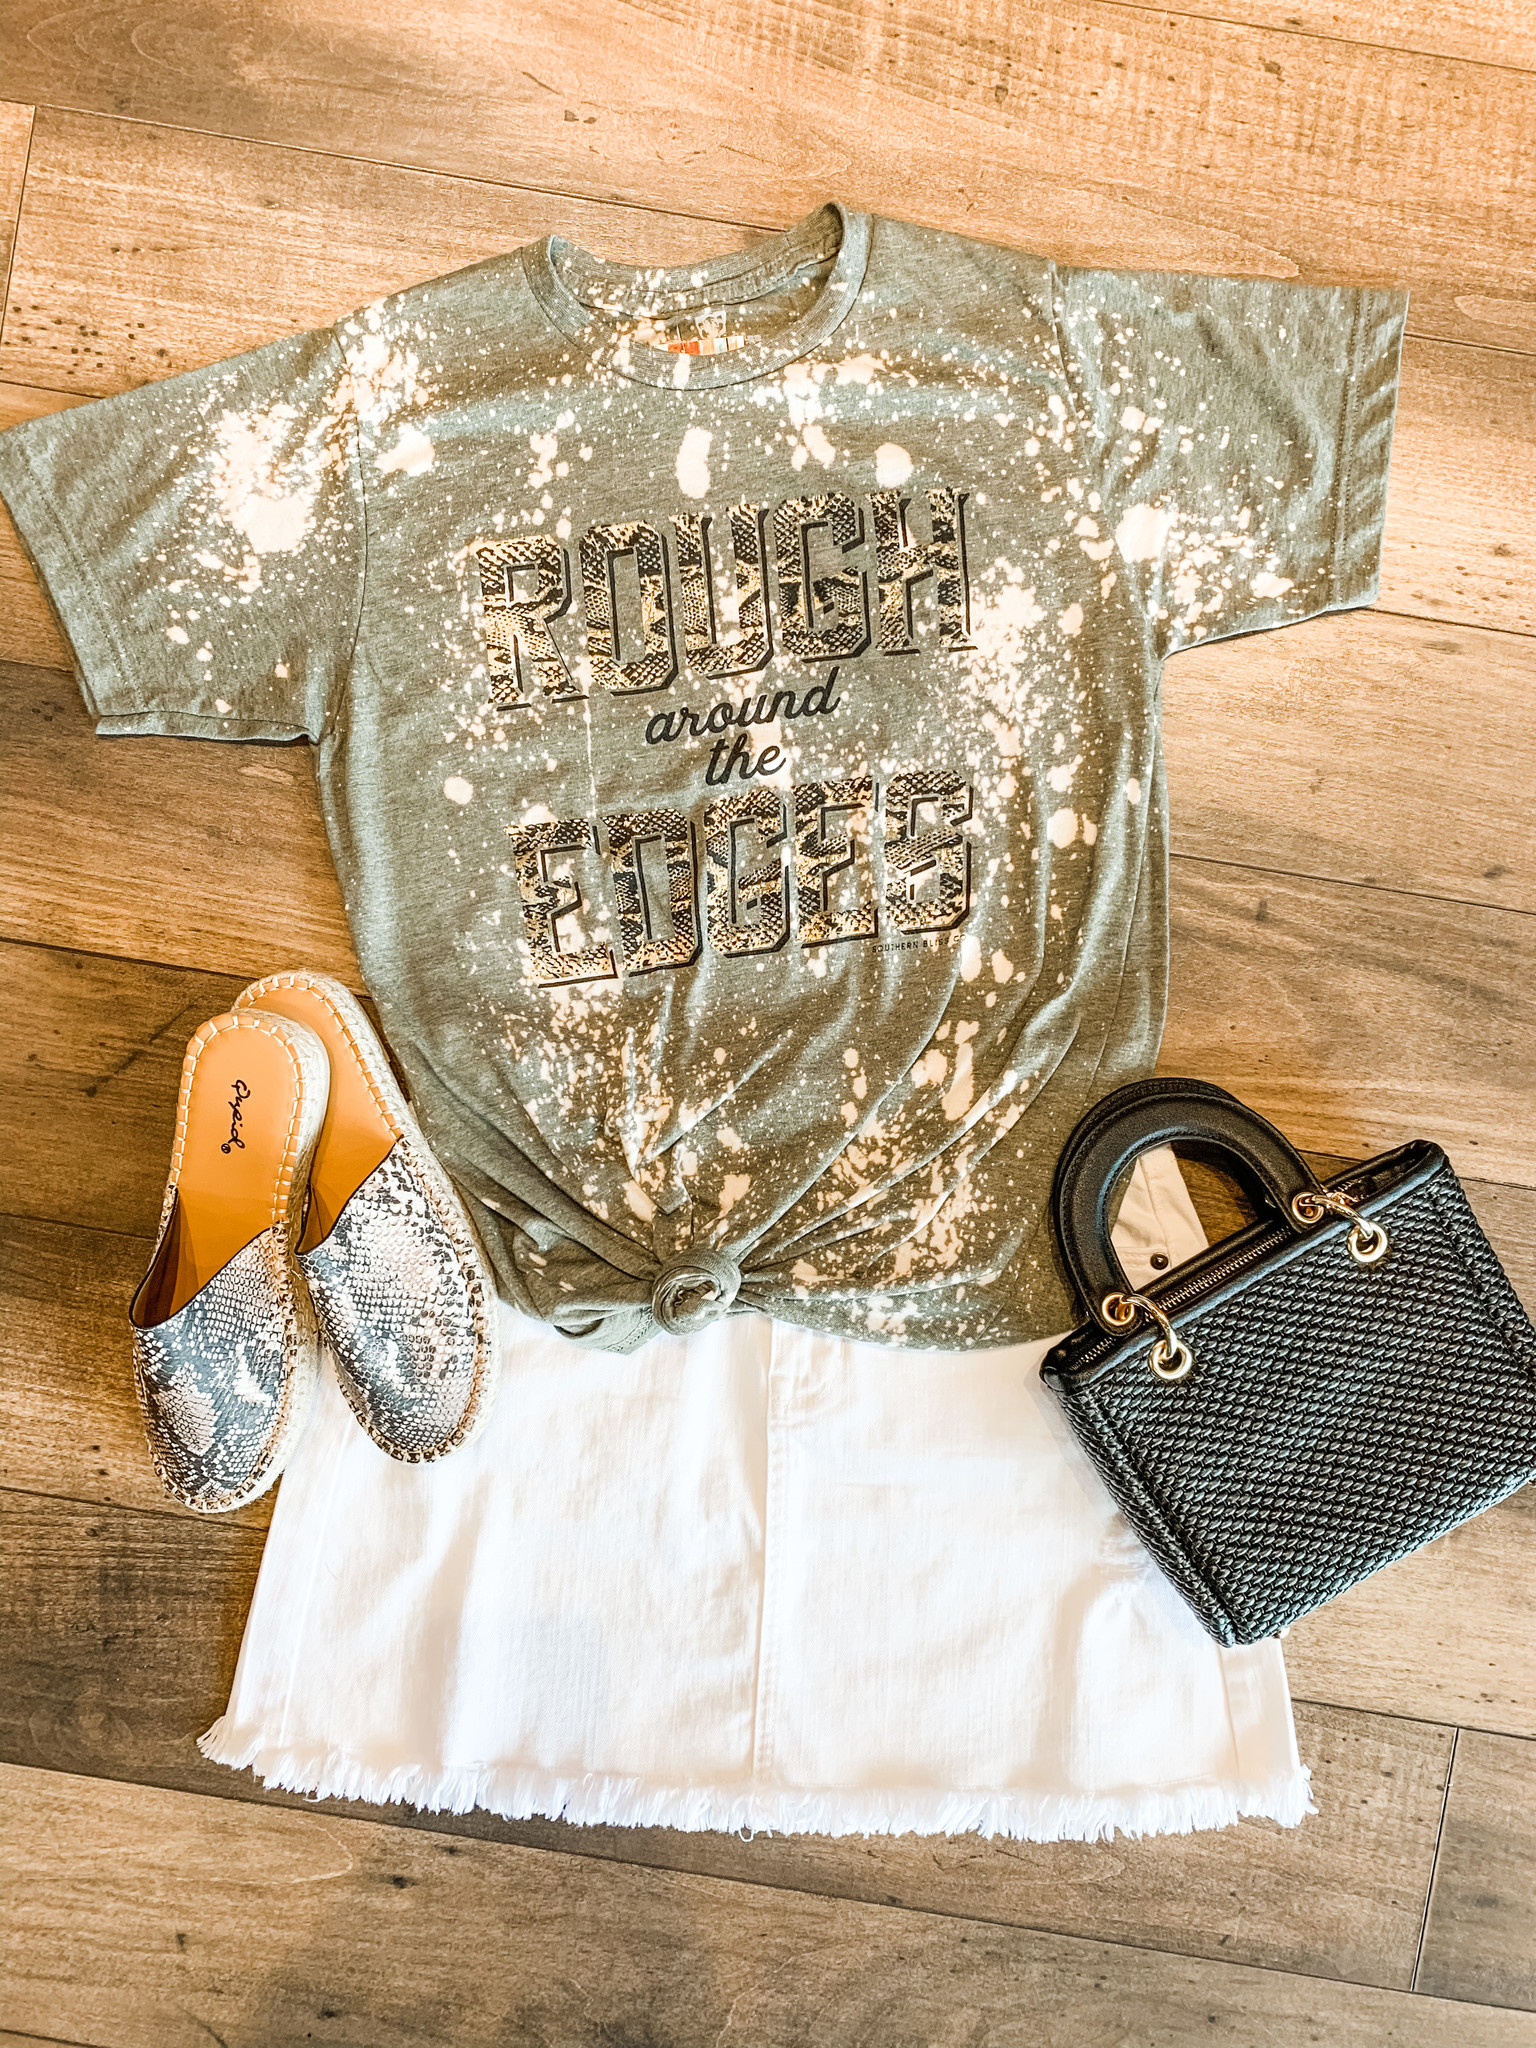 Southern Bliss Rough Around The Edges Tee